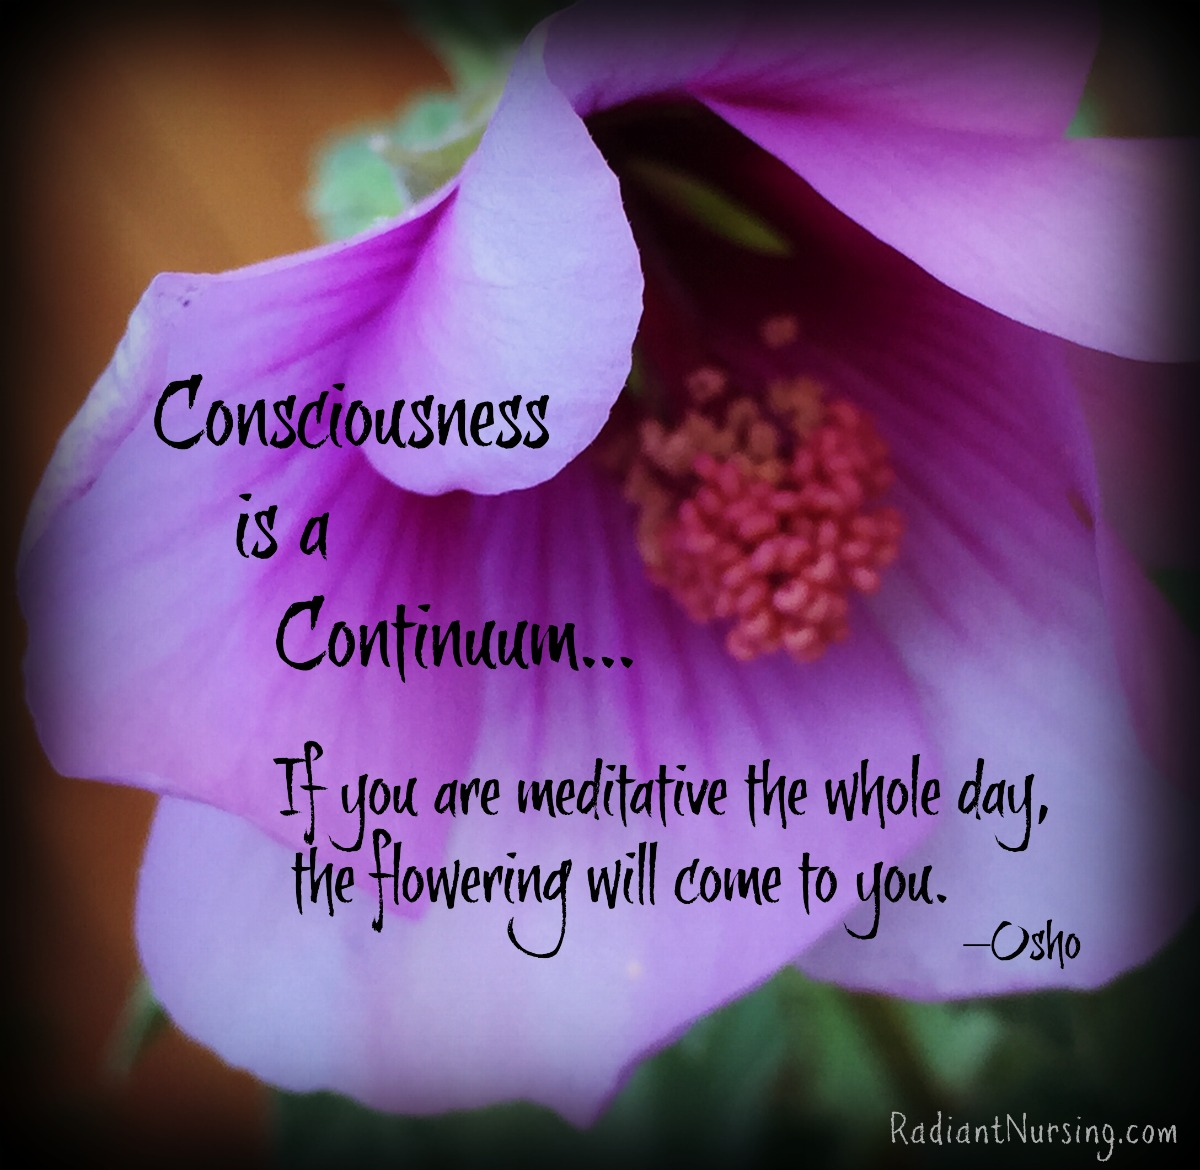 Consciousness is a continuum.